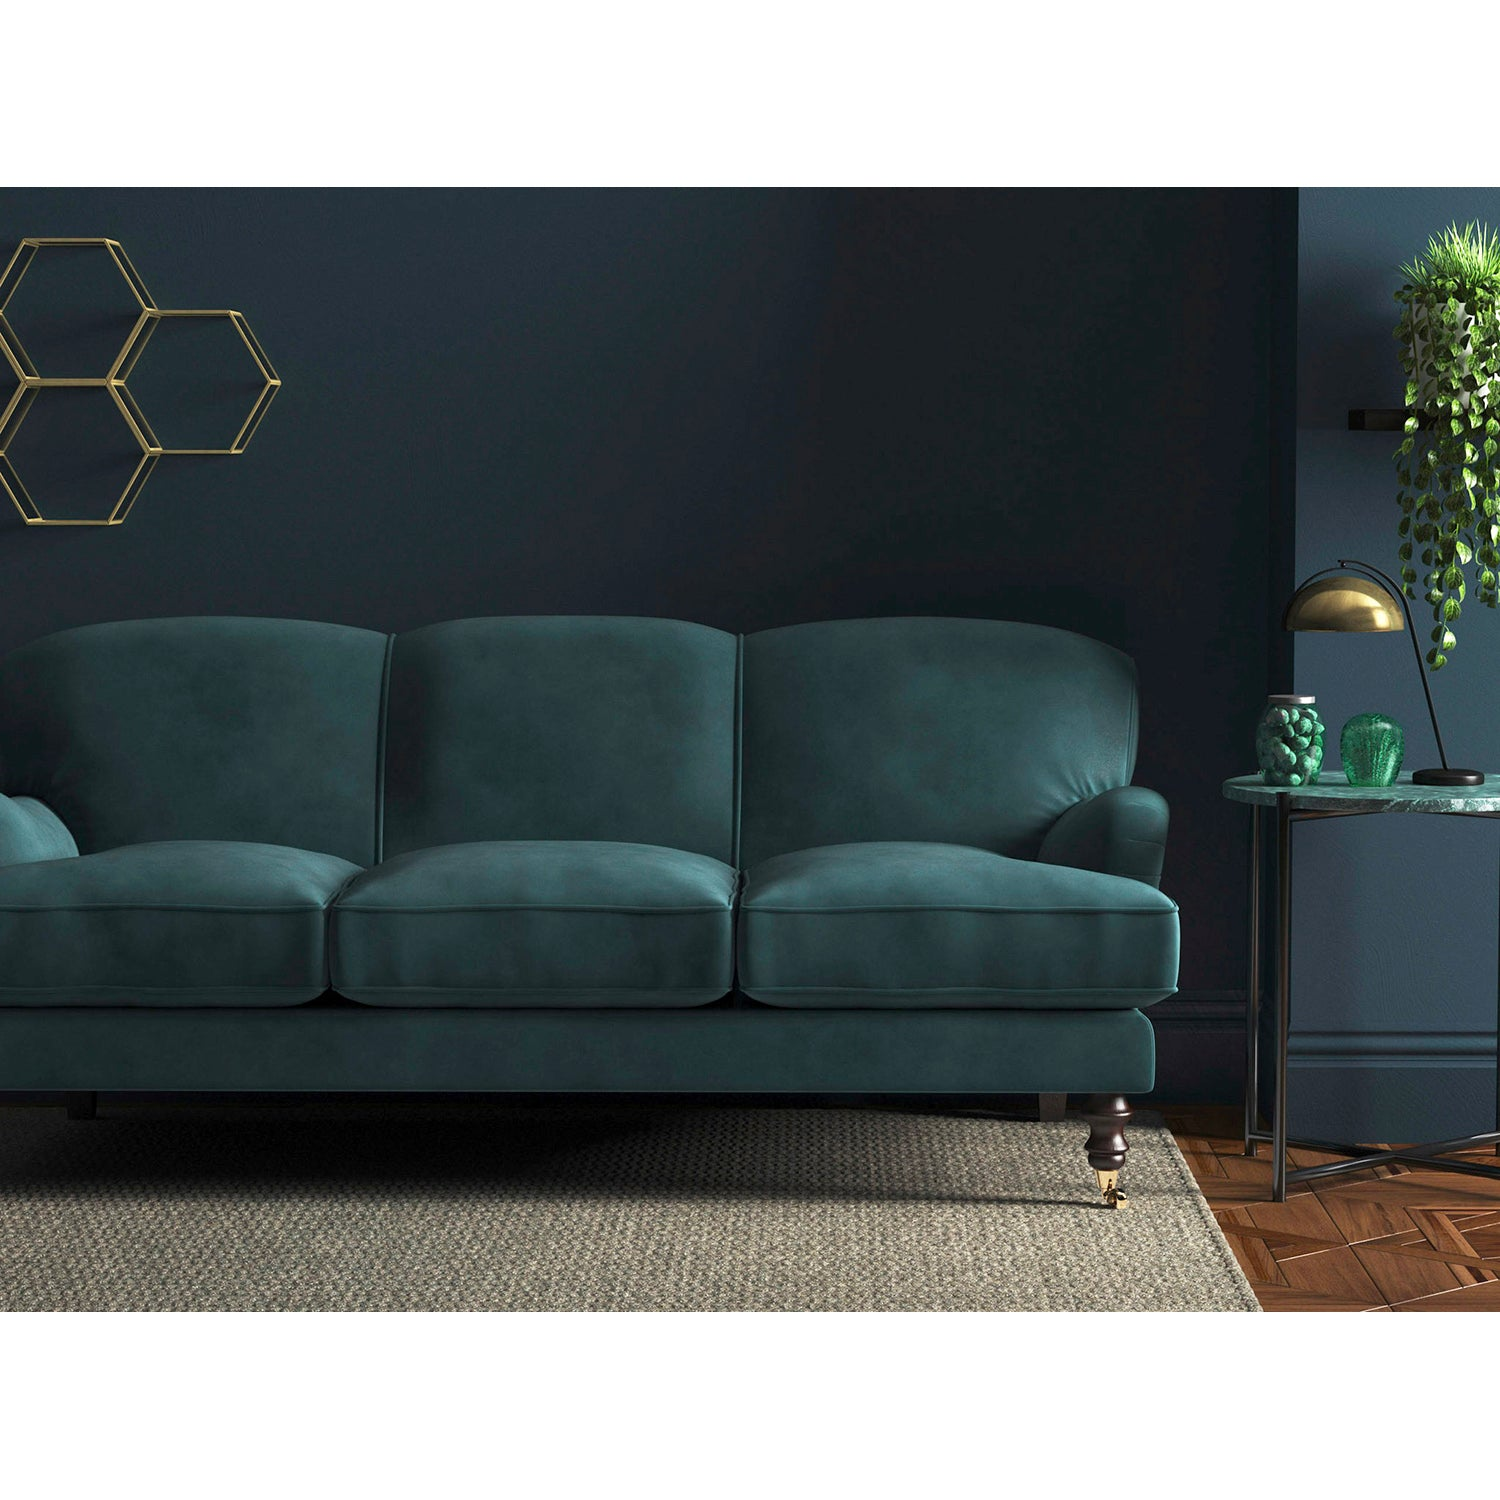 Sofa upholstered in a blue velvet fabric with a stain resistant finish